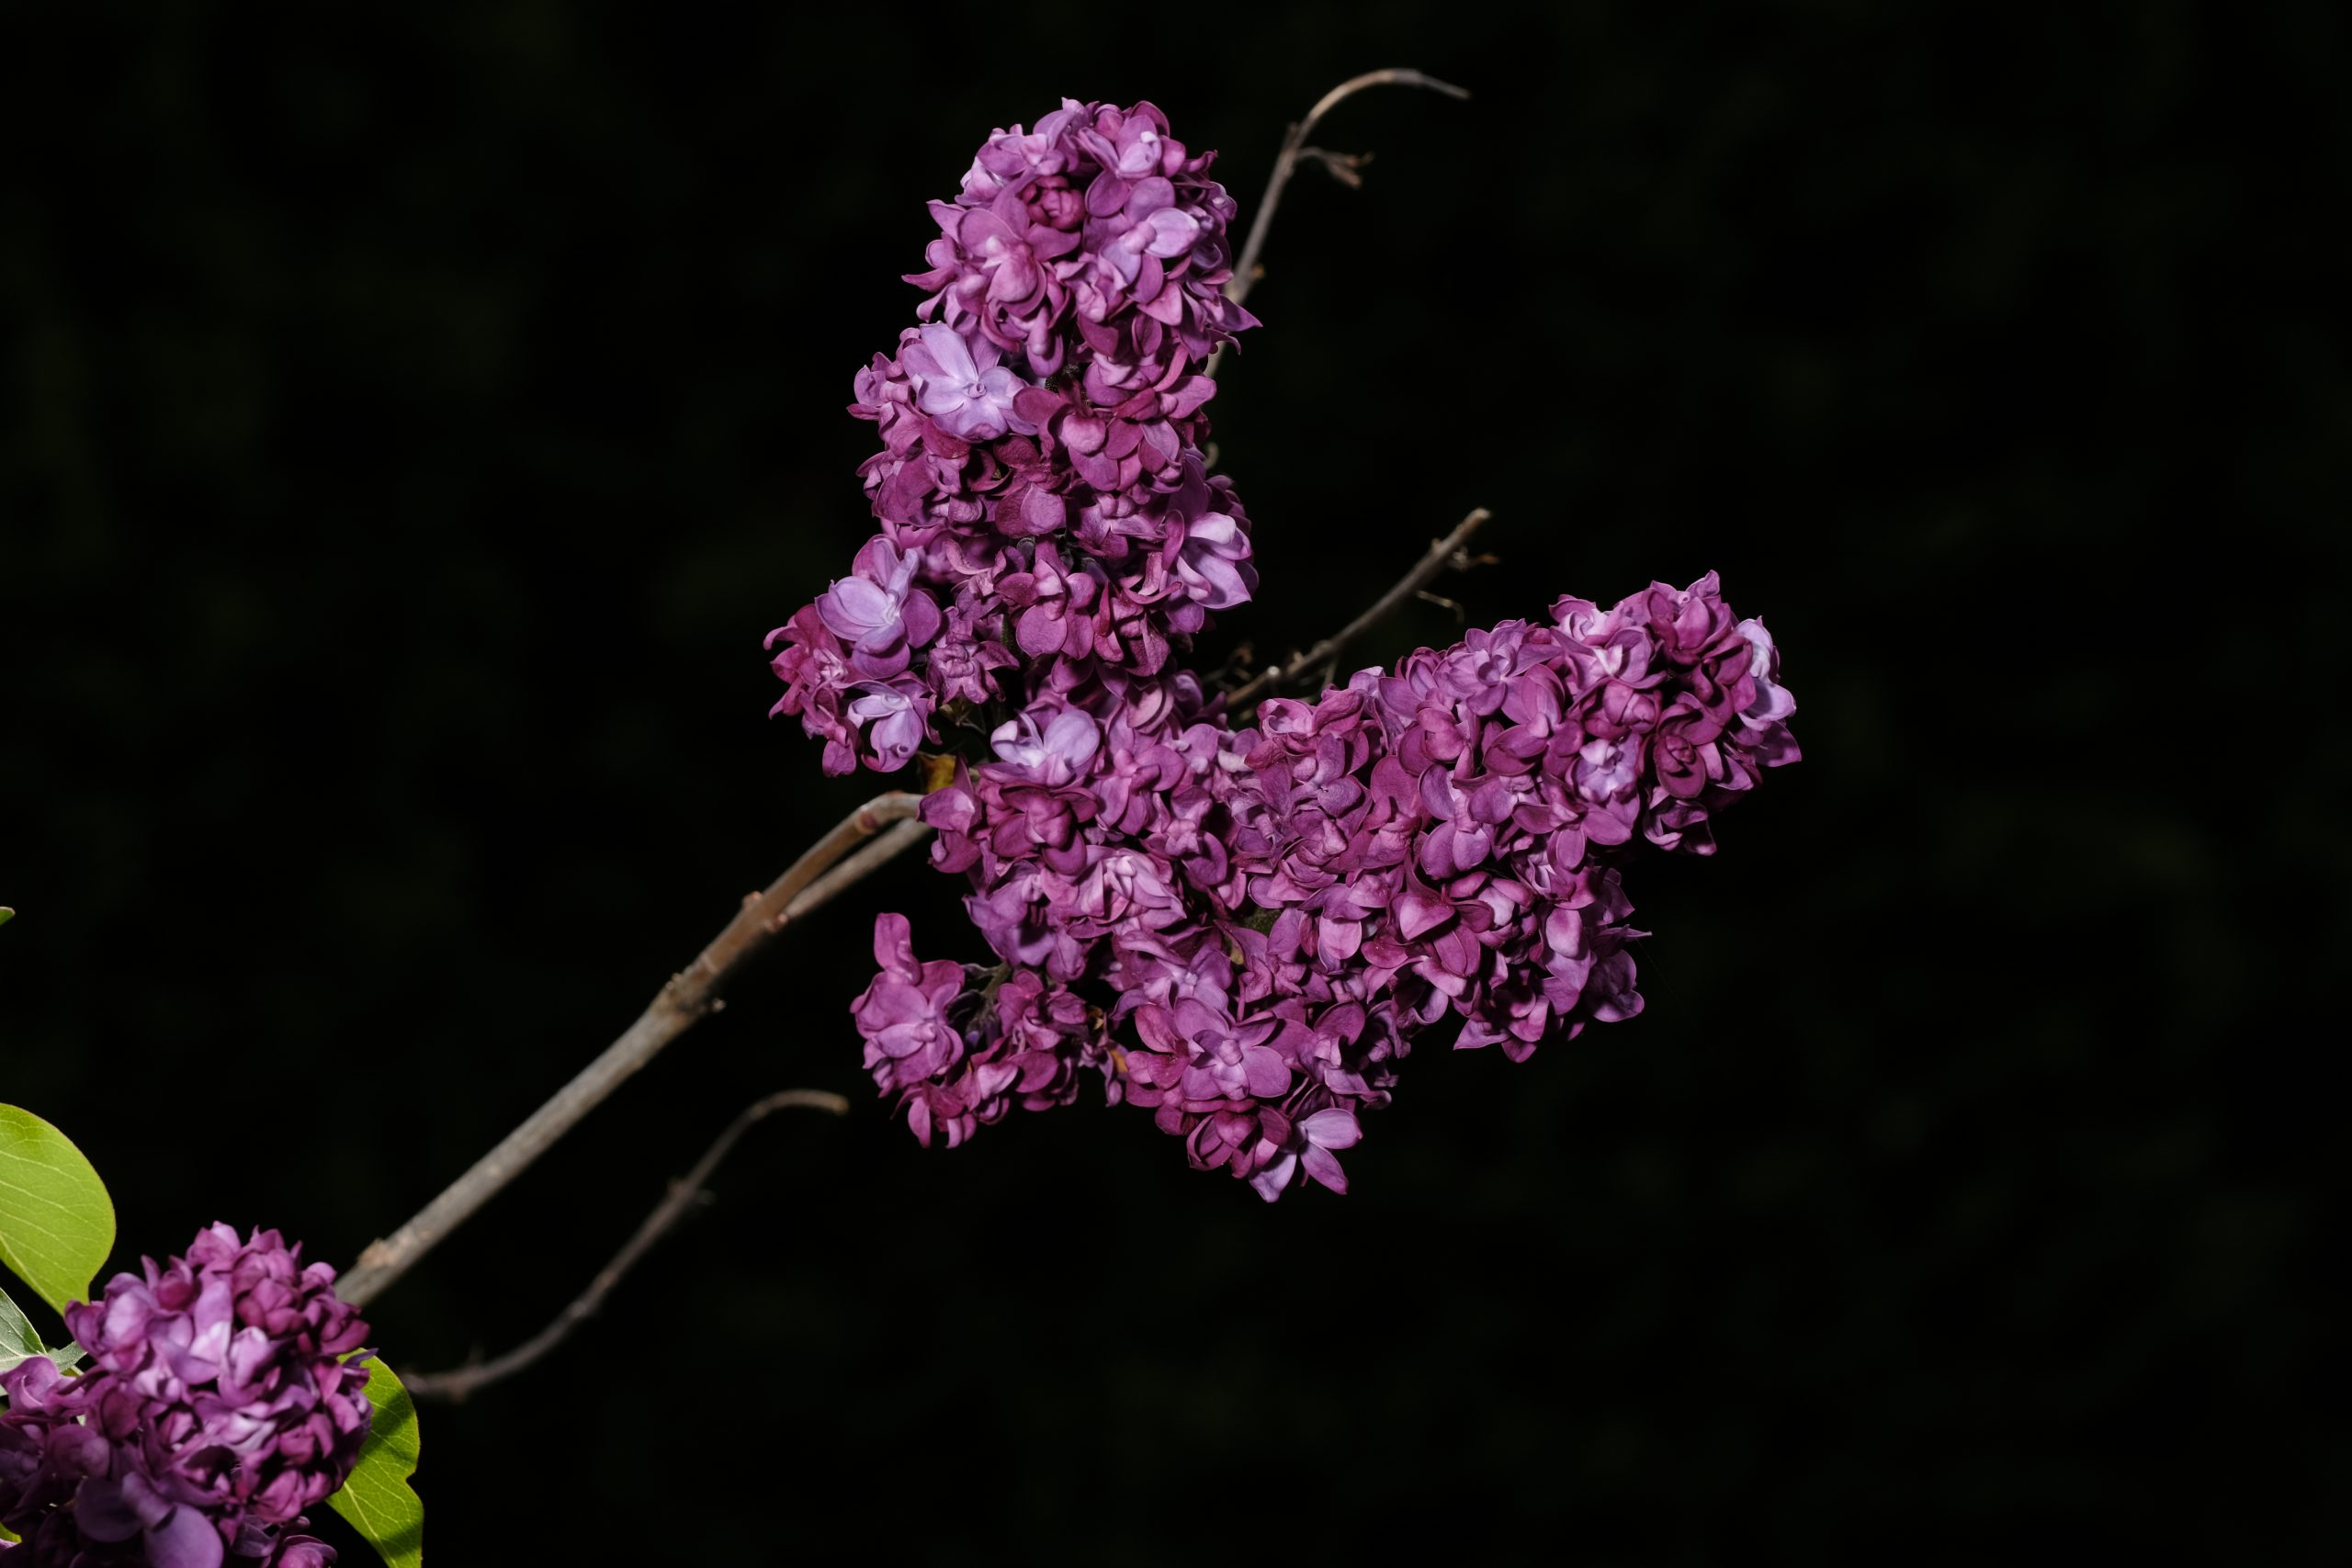 Lilac_Oregon 2 May 2021 Copyright Steve J Davis